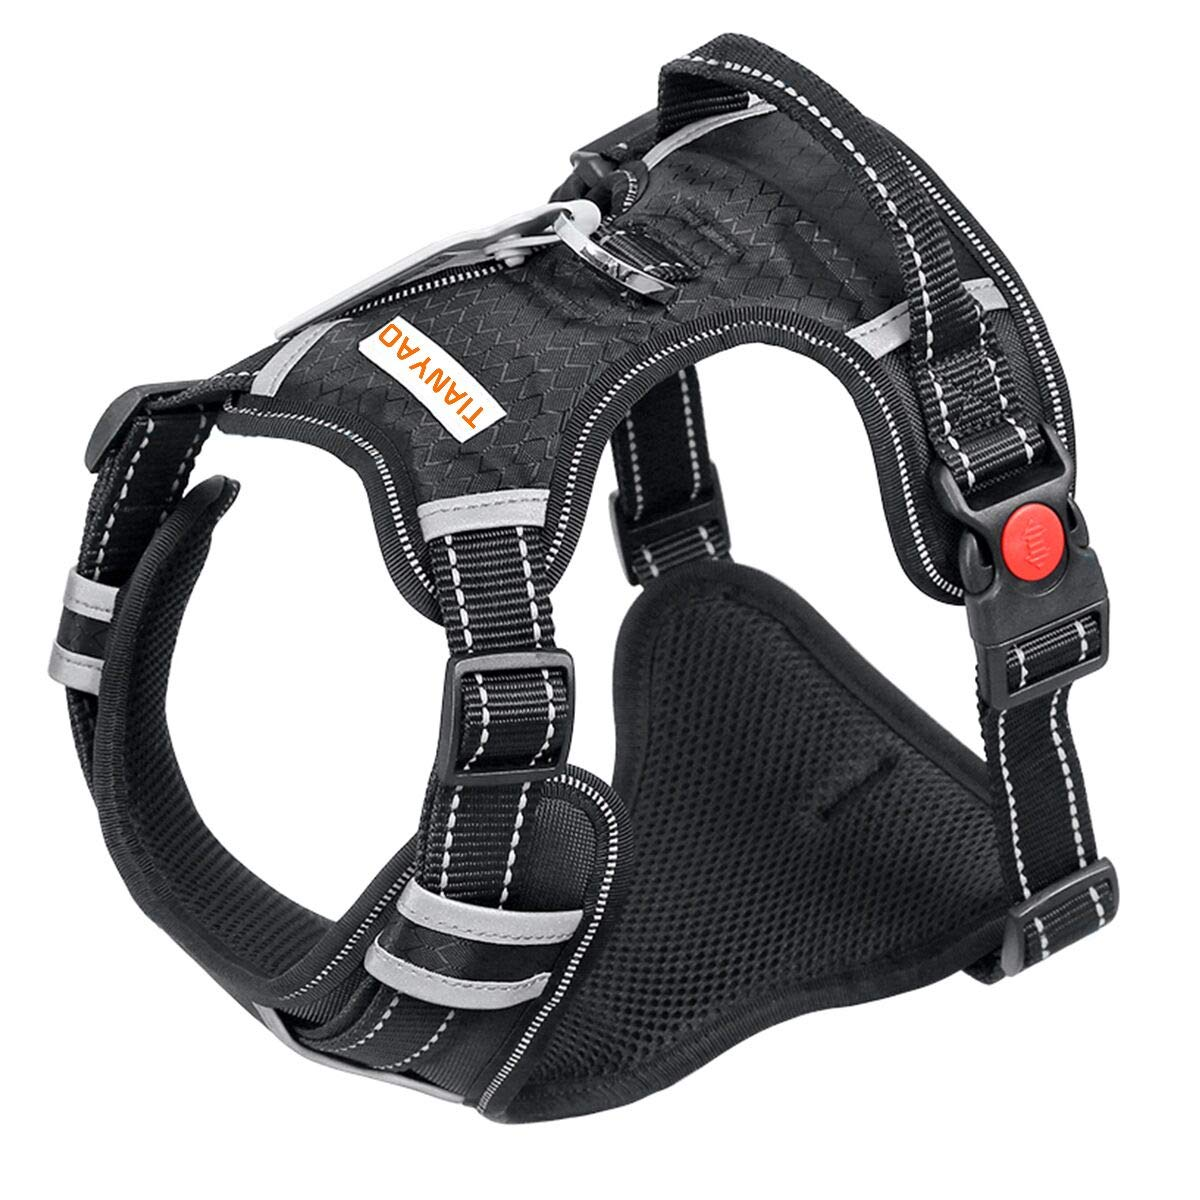 TIANYAO Large Dog Harness No Pull Reflective Oxford Material Soft Pet Vest Adjustable for Large Dogs Easy Control Harness with Dog Collar (L, Black)